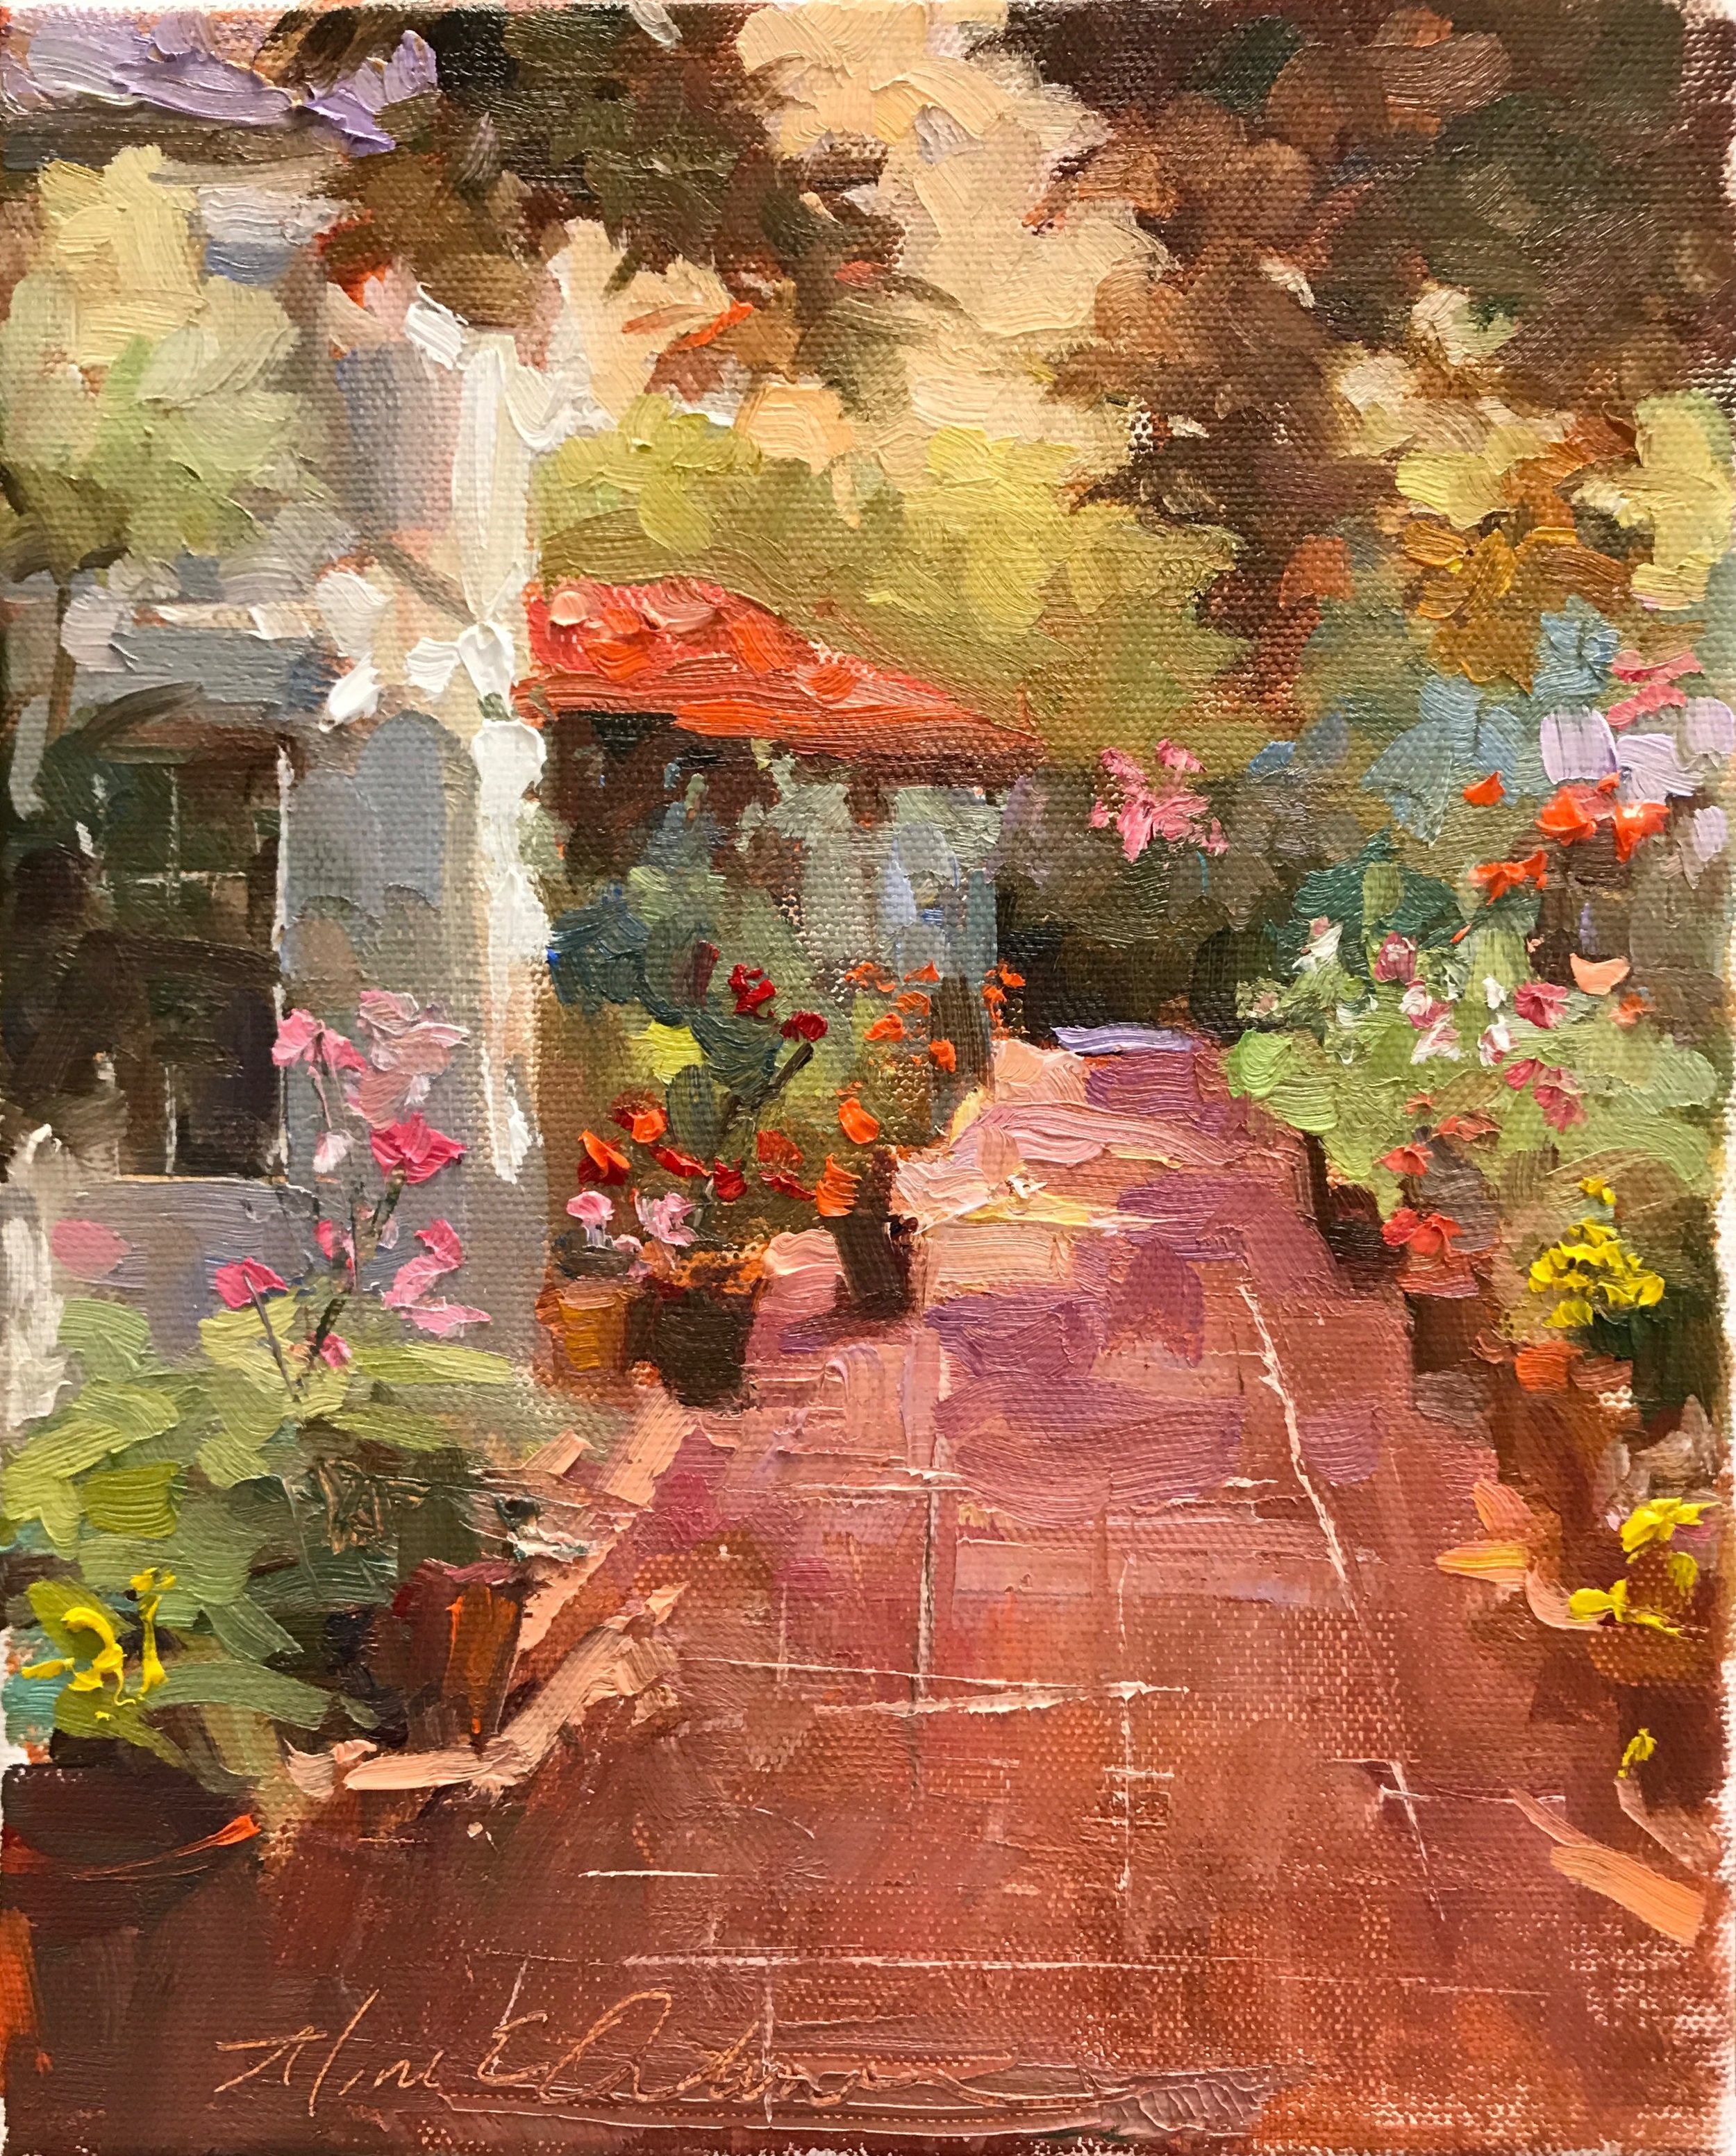 Nicky's Garden 9 x 12 oil on canvas